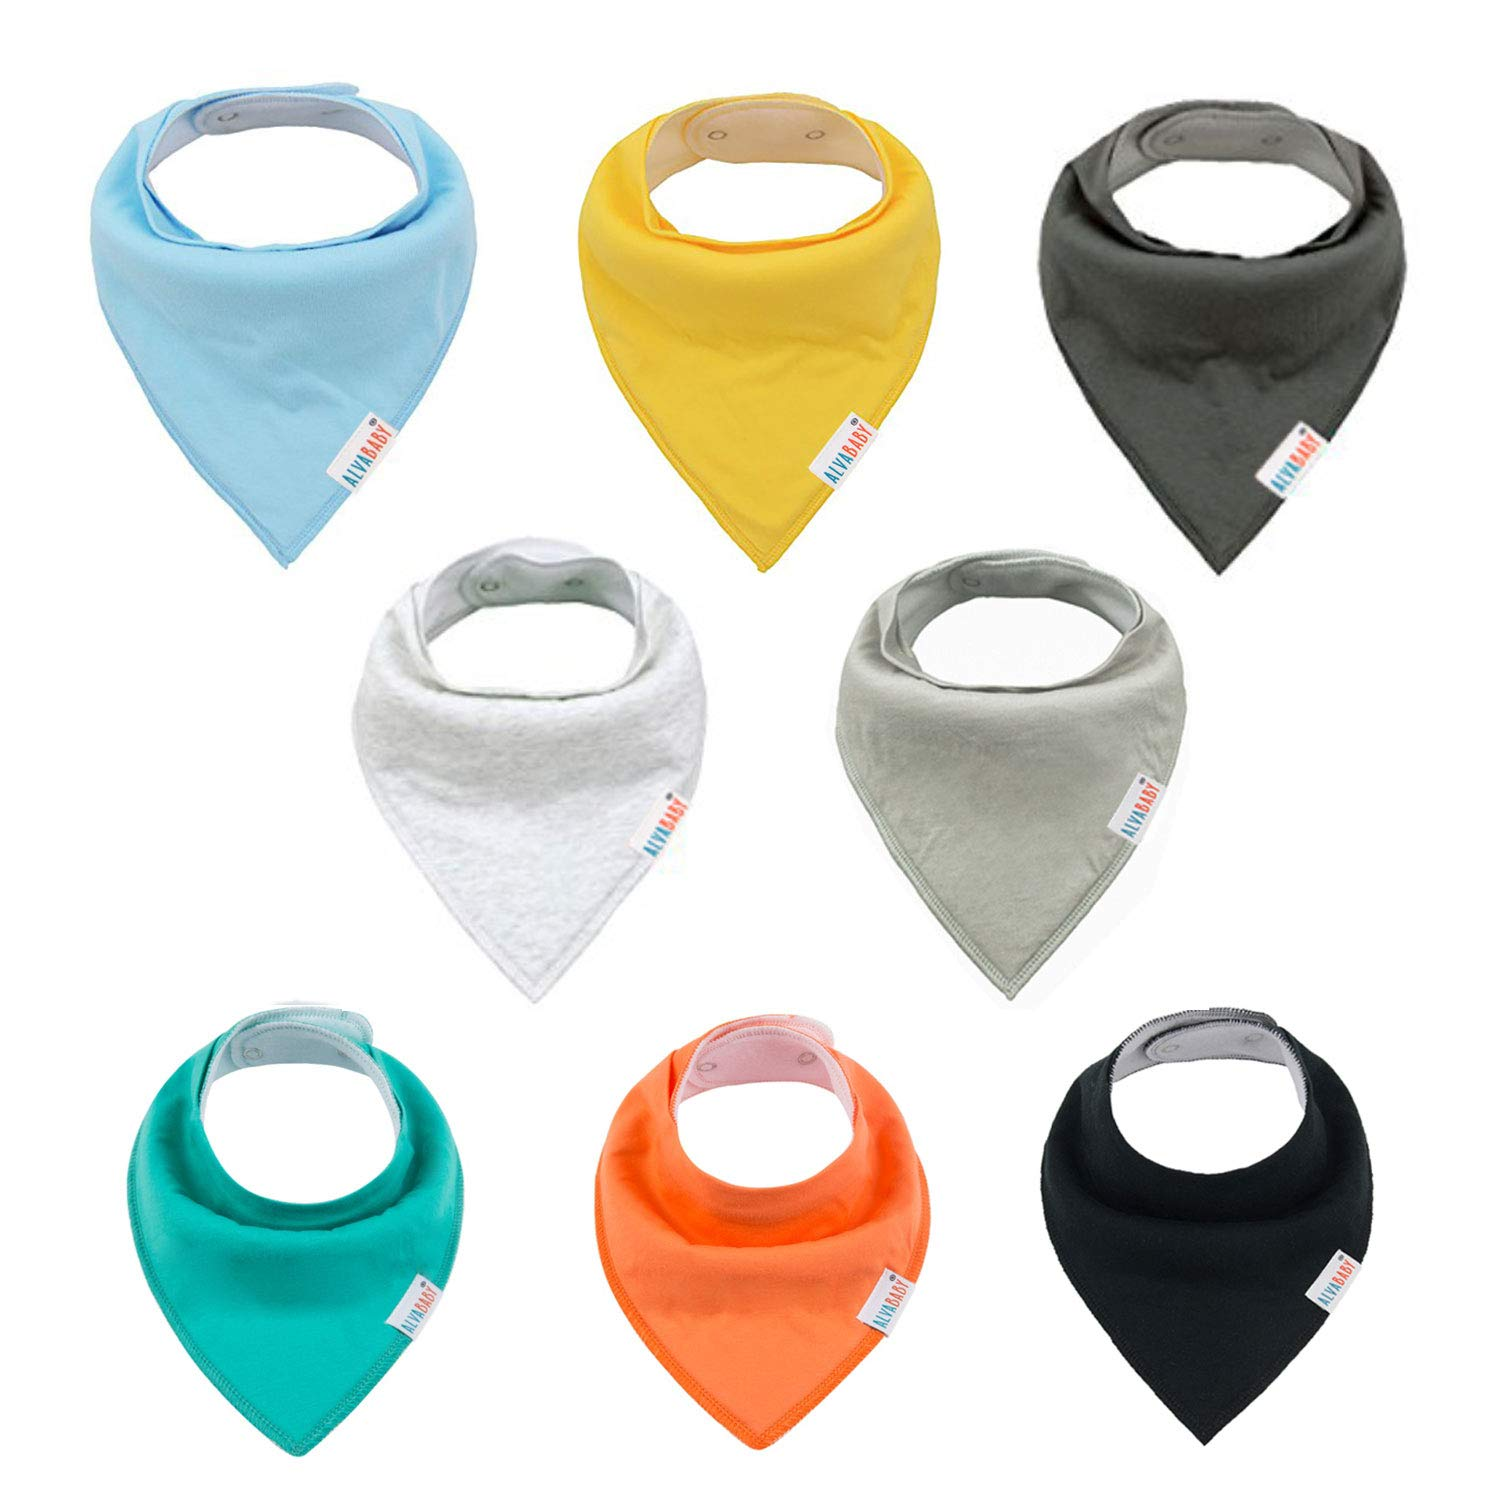 ALVABABY Bandana Drooling Bibs Resuable Washable Adjustable for Boys and Girls 8 Pack of Super Absorbent Baby Gift Sets 8SD36